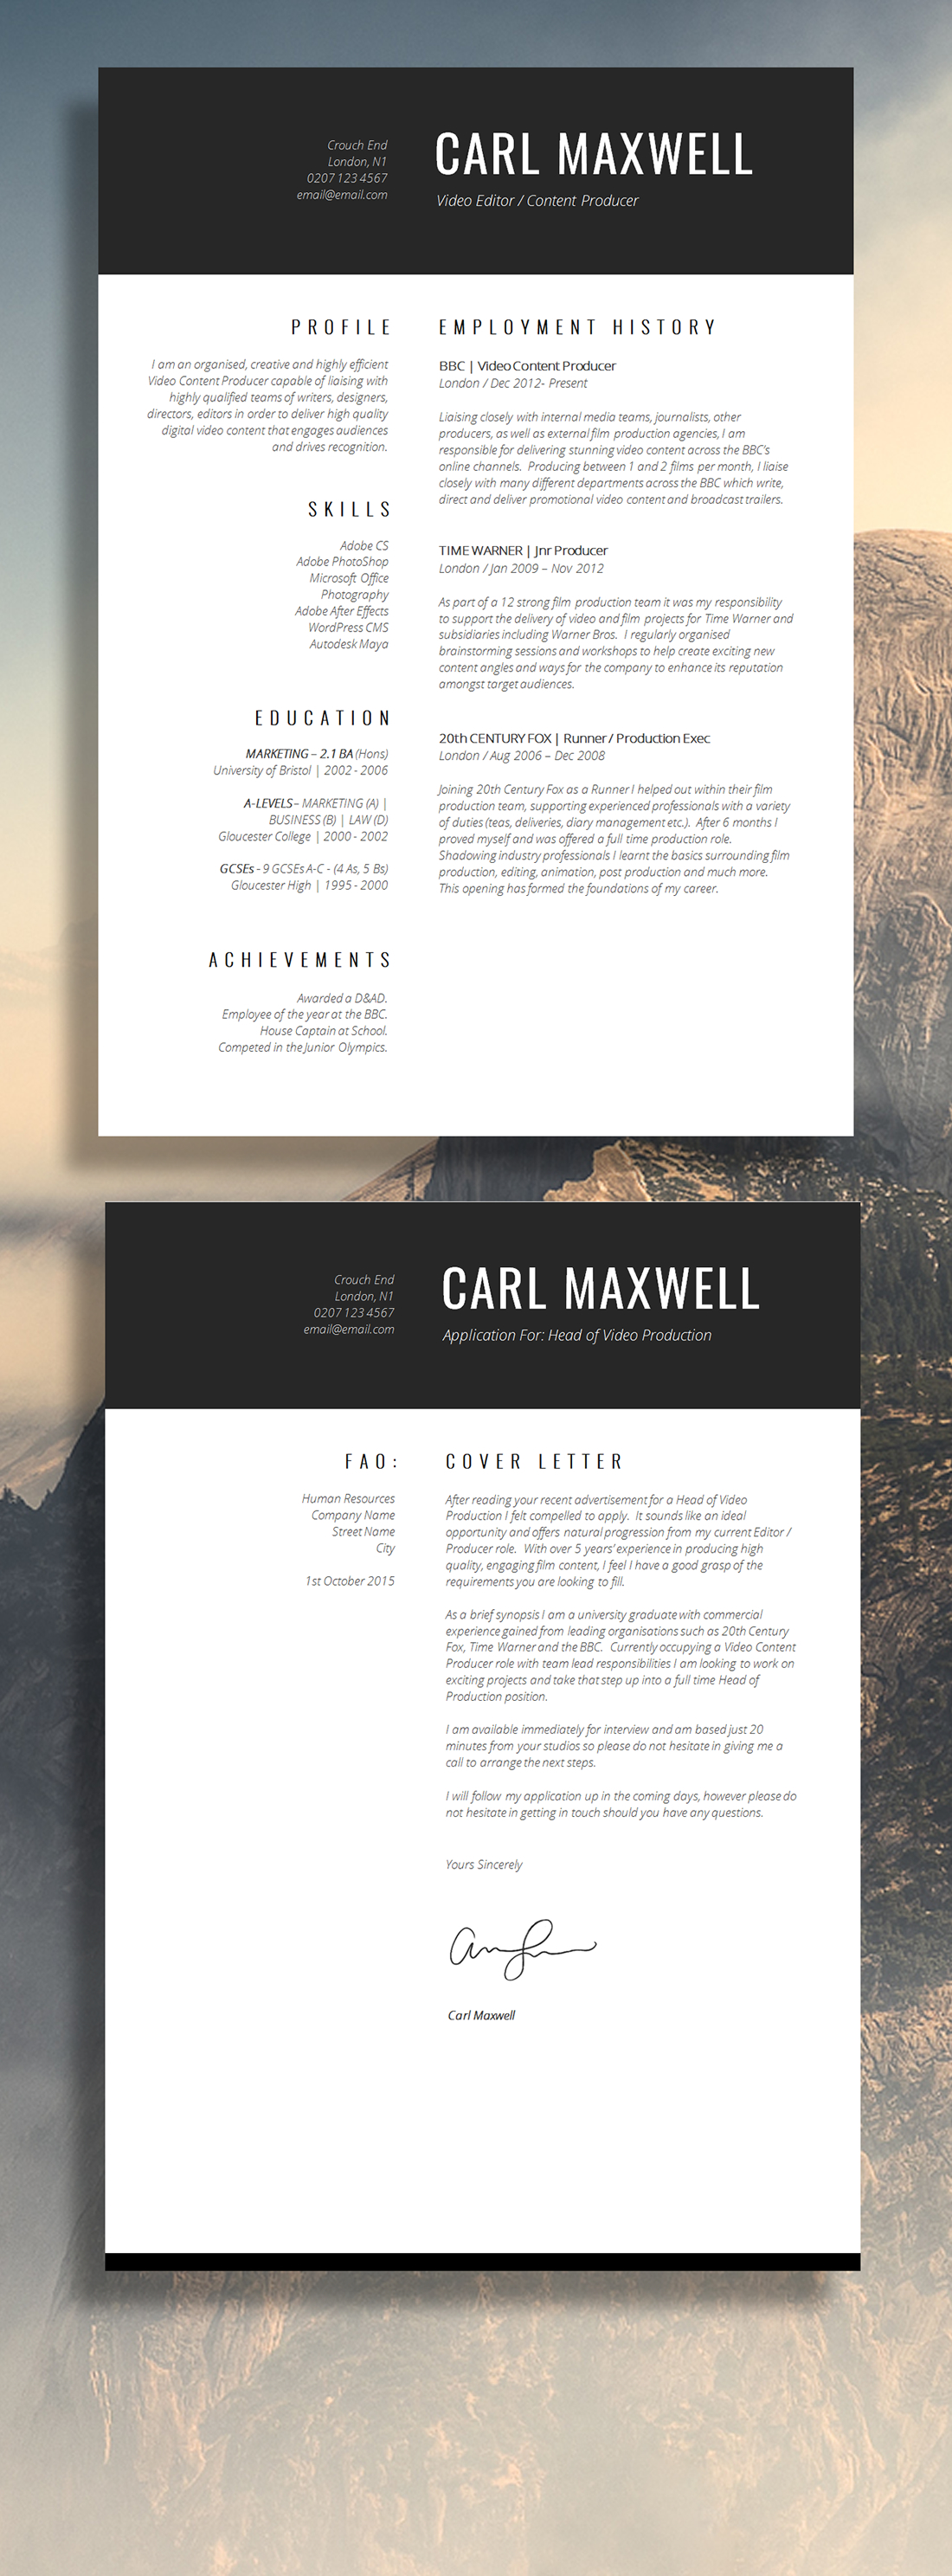 12 brilliant cv designs that you u2019ll want to steal u2026